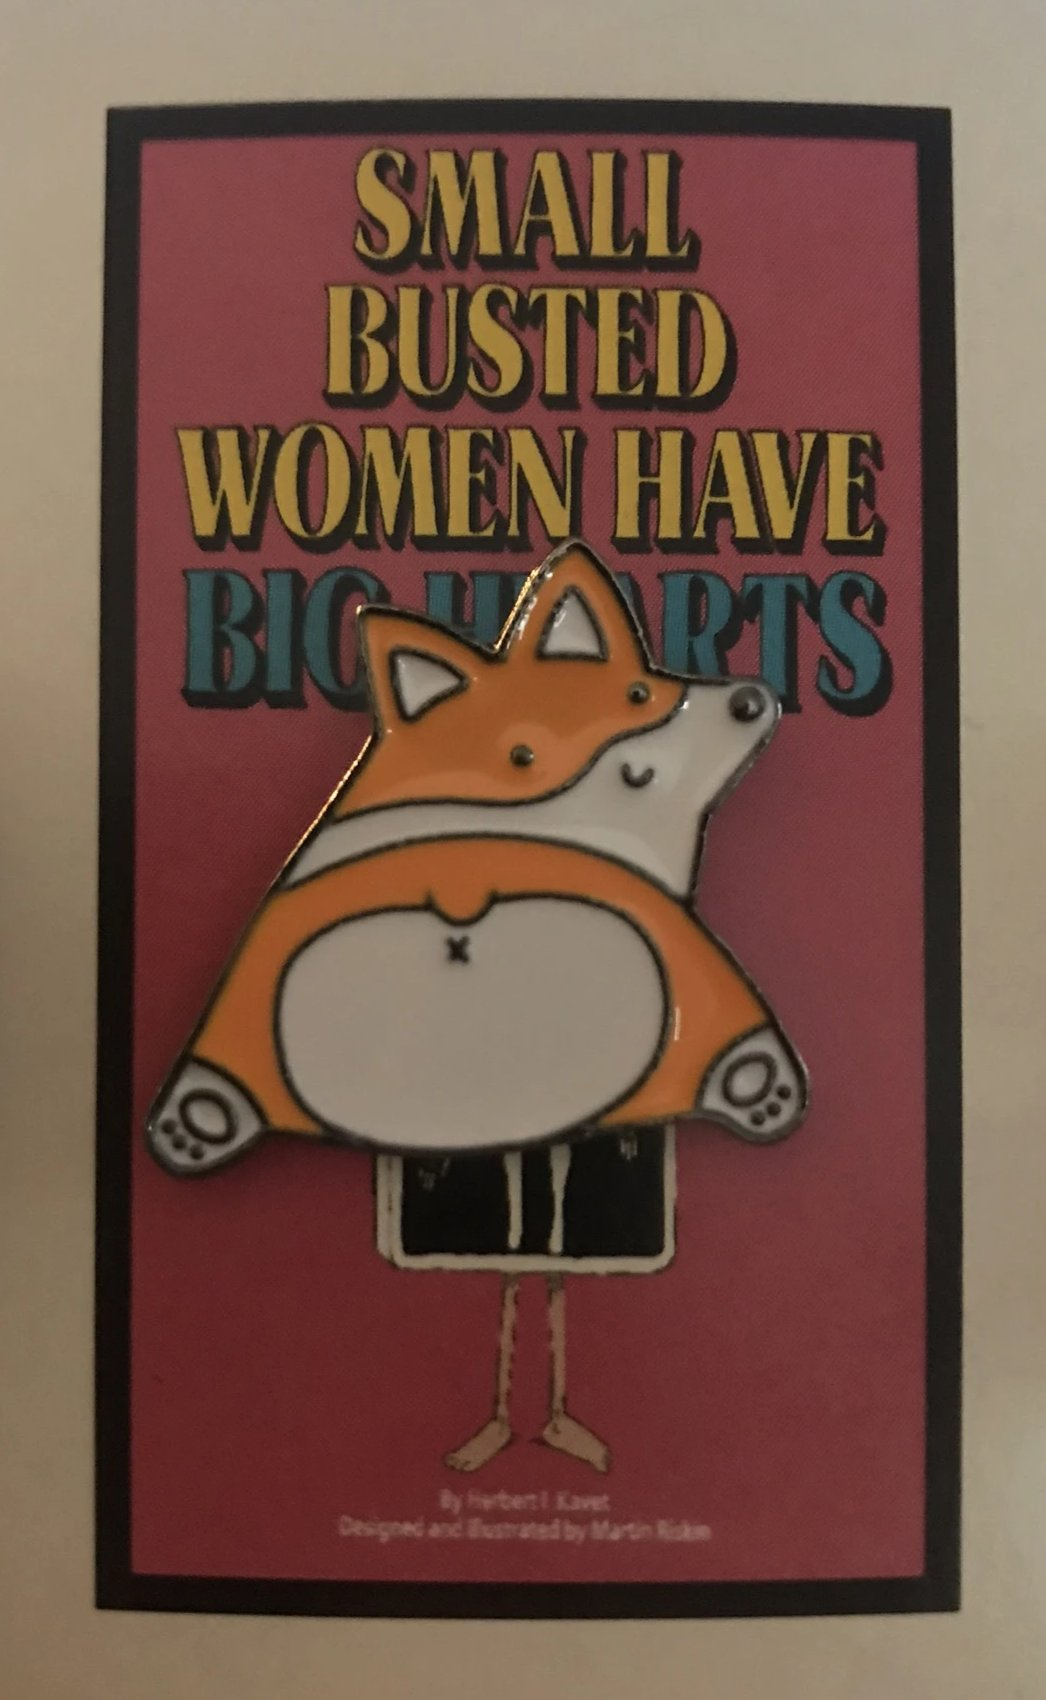 Enamel pin on a vintage card